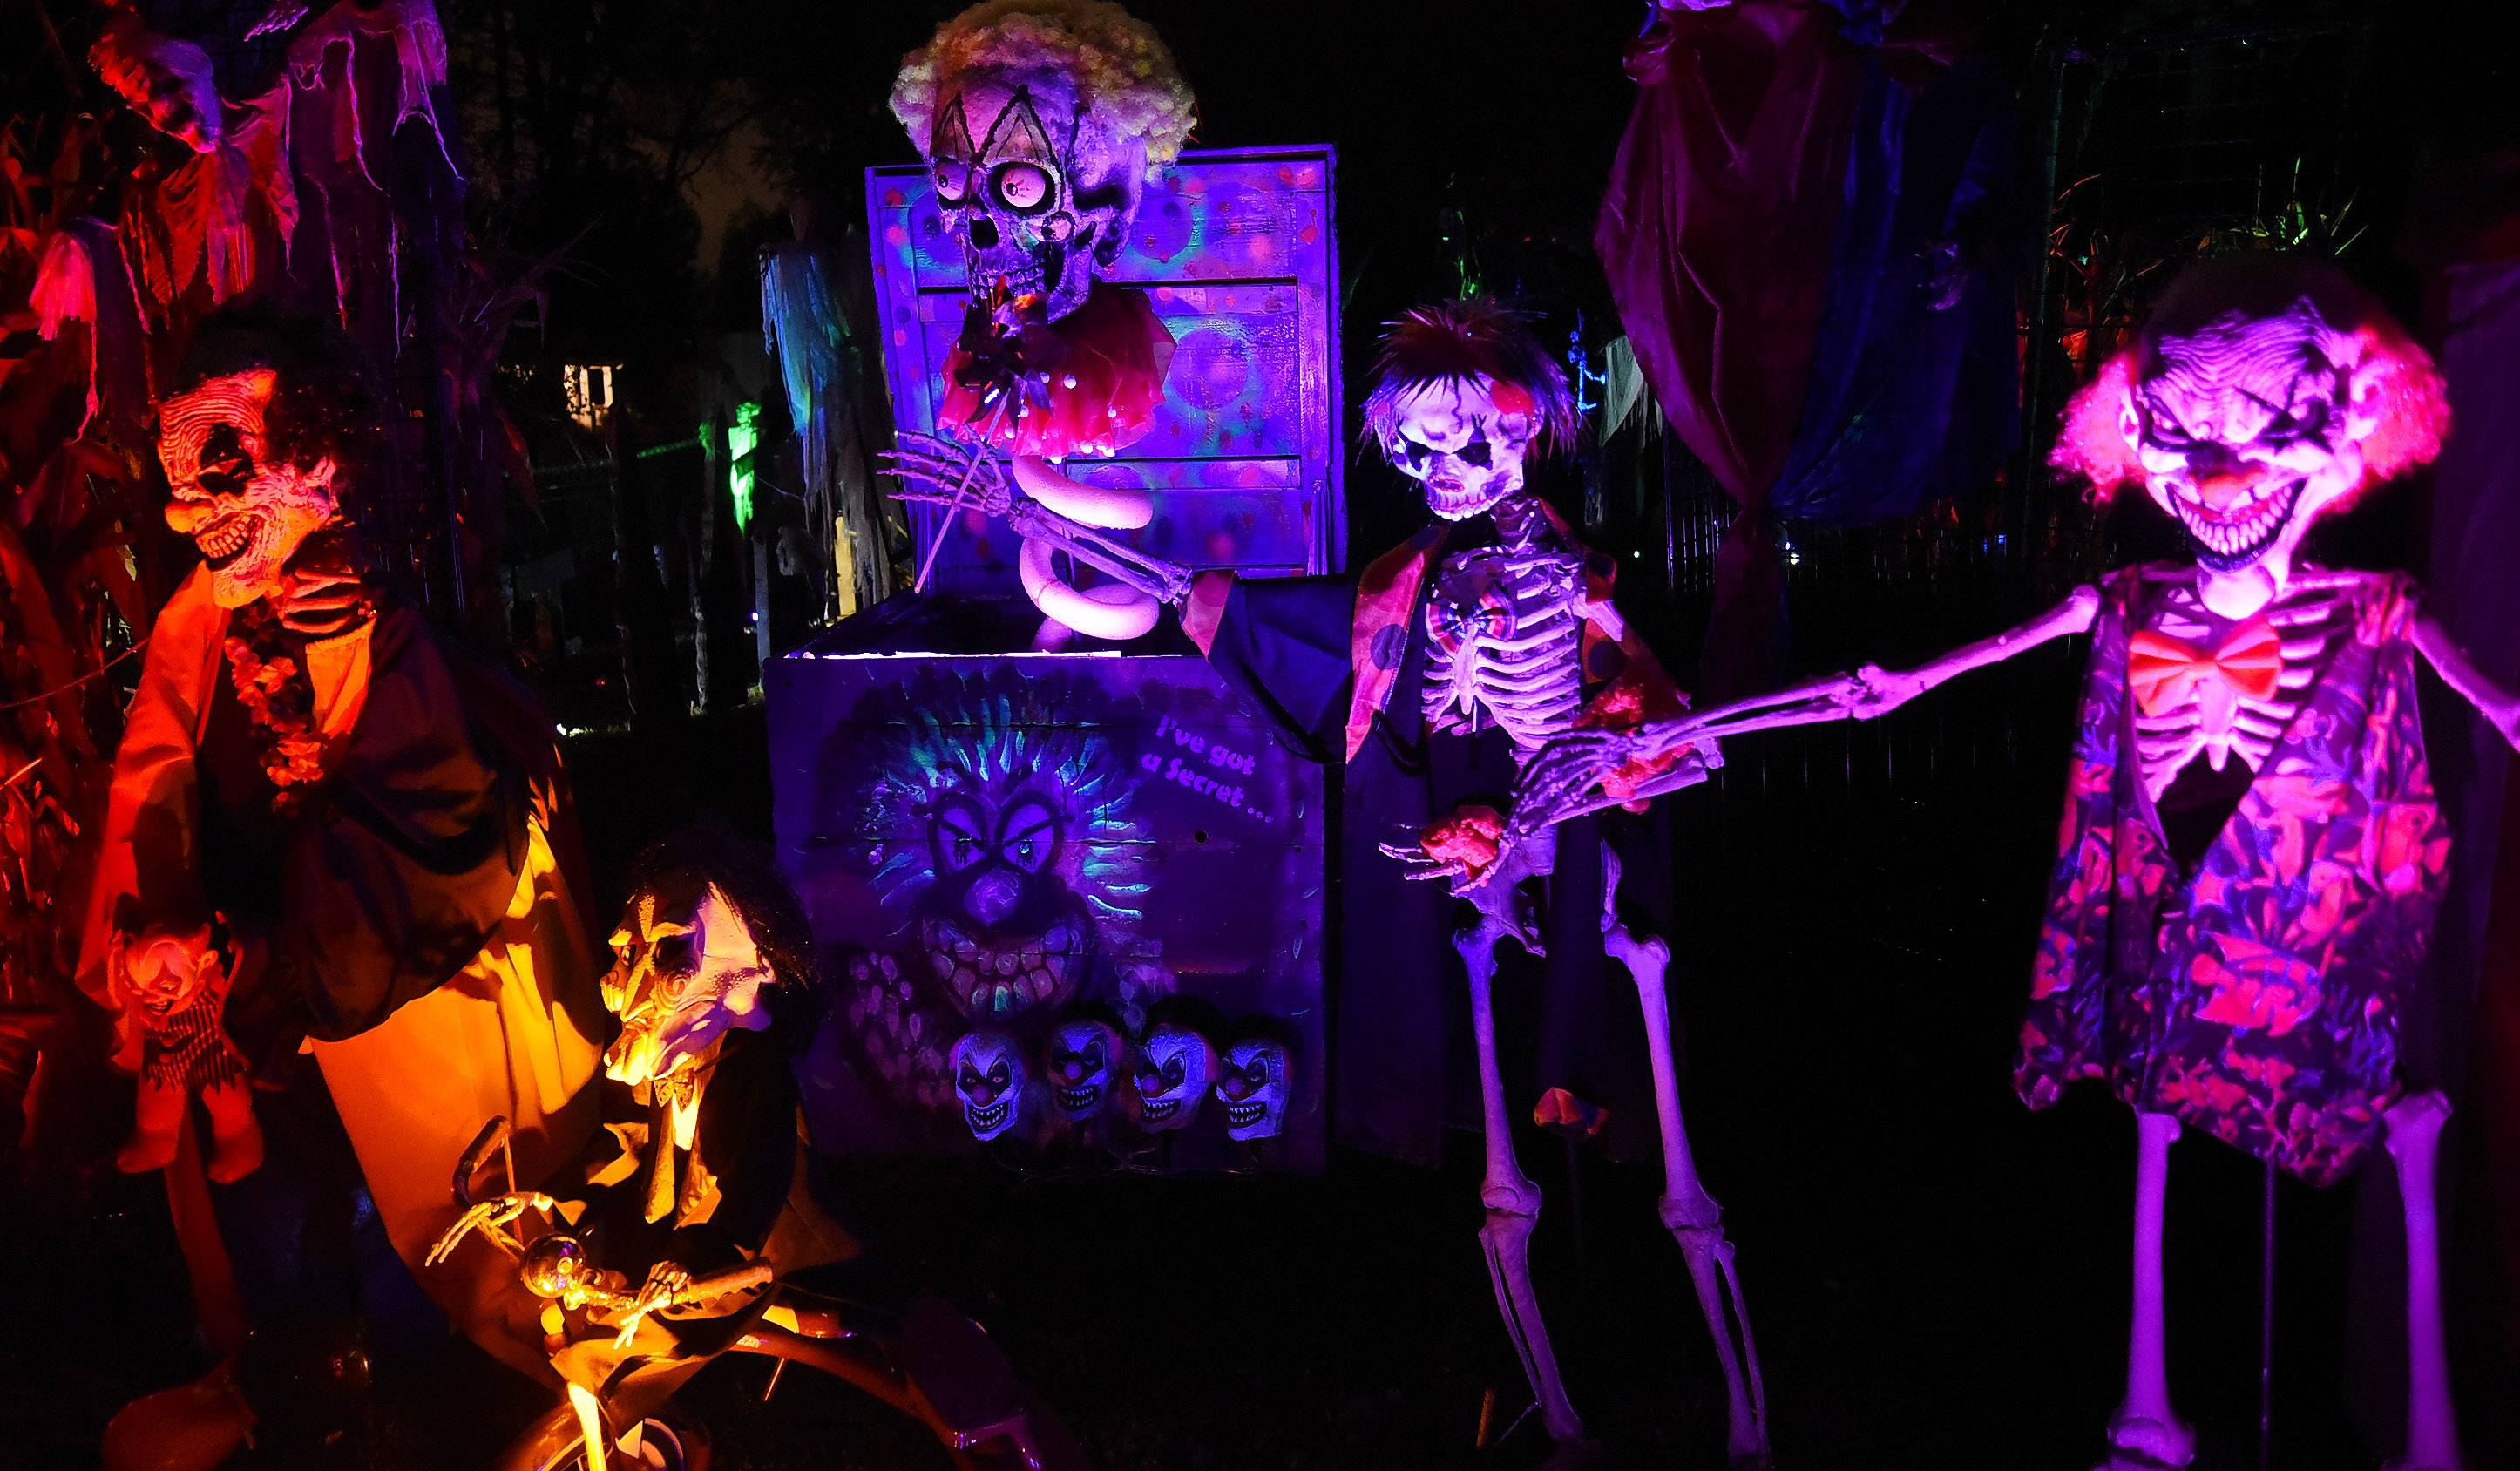 While the display changes every year, the Halloween spectacular in front of the Arlington Heights home of Michael Podlin, TammySue Margalit and family generally incorporates skeletons and clowns.